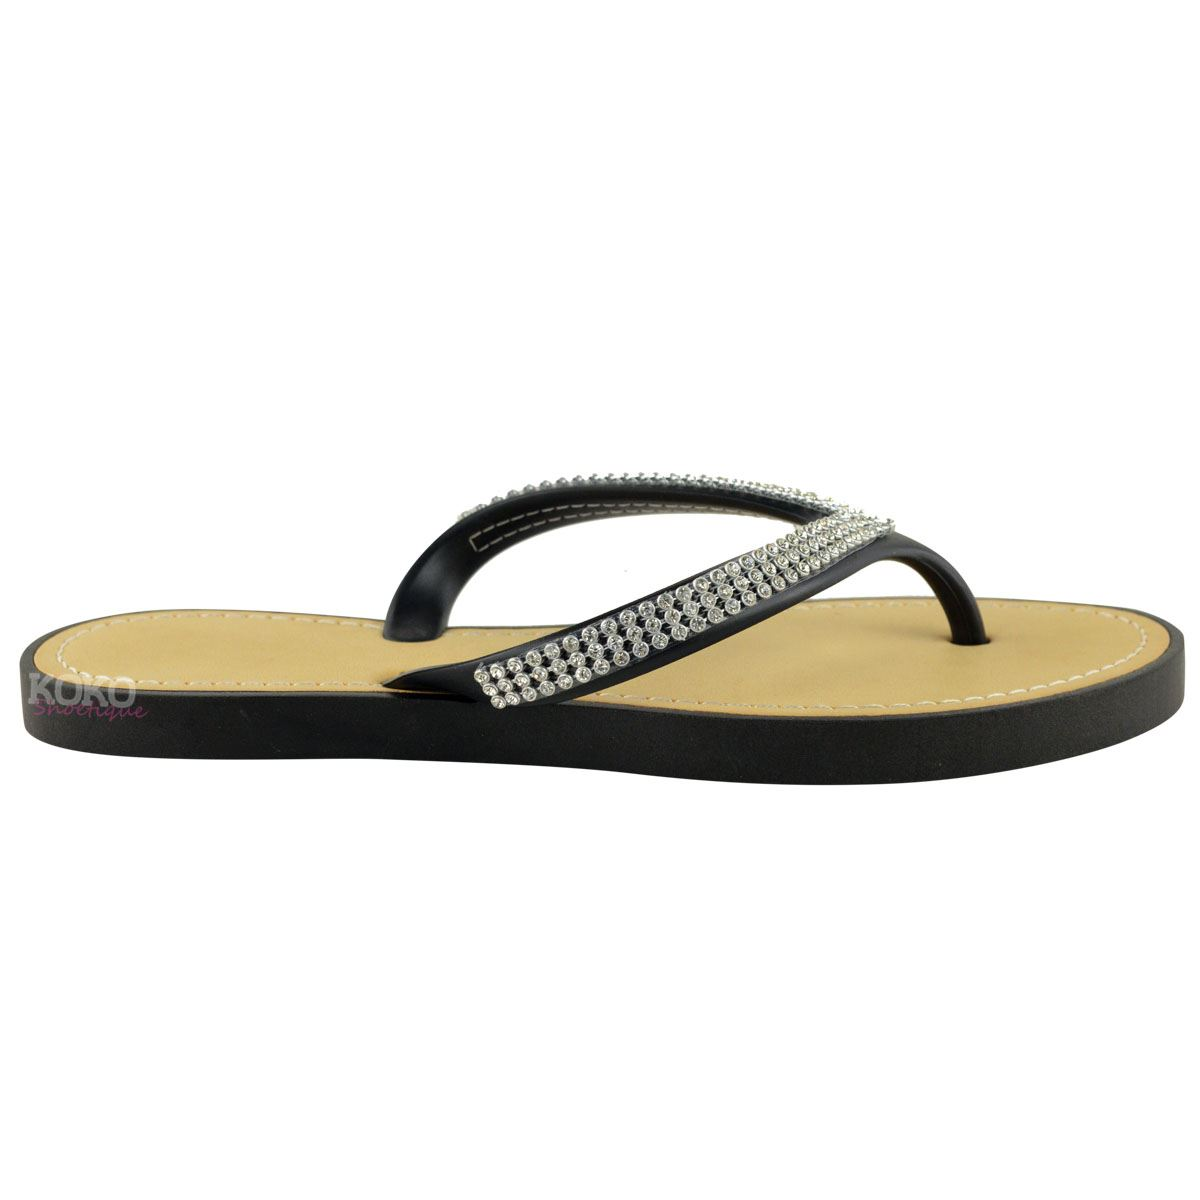 NEW-JELLY-SANDALS-WOMENS-LADIES-DIAMANTE-SUMMER-HOLIDAY-COMFORTS-FLIP-FLOPS-SIZE thumbnail 28